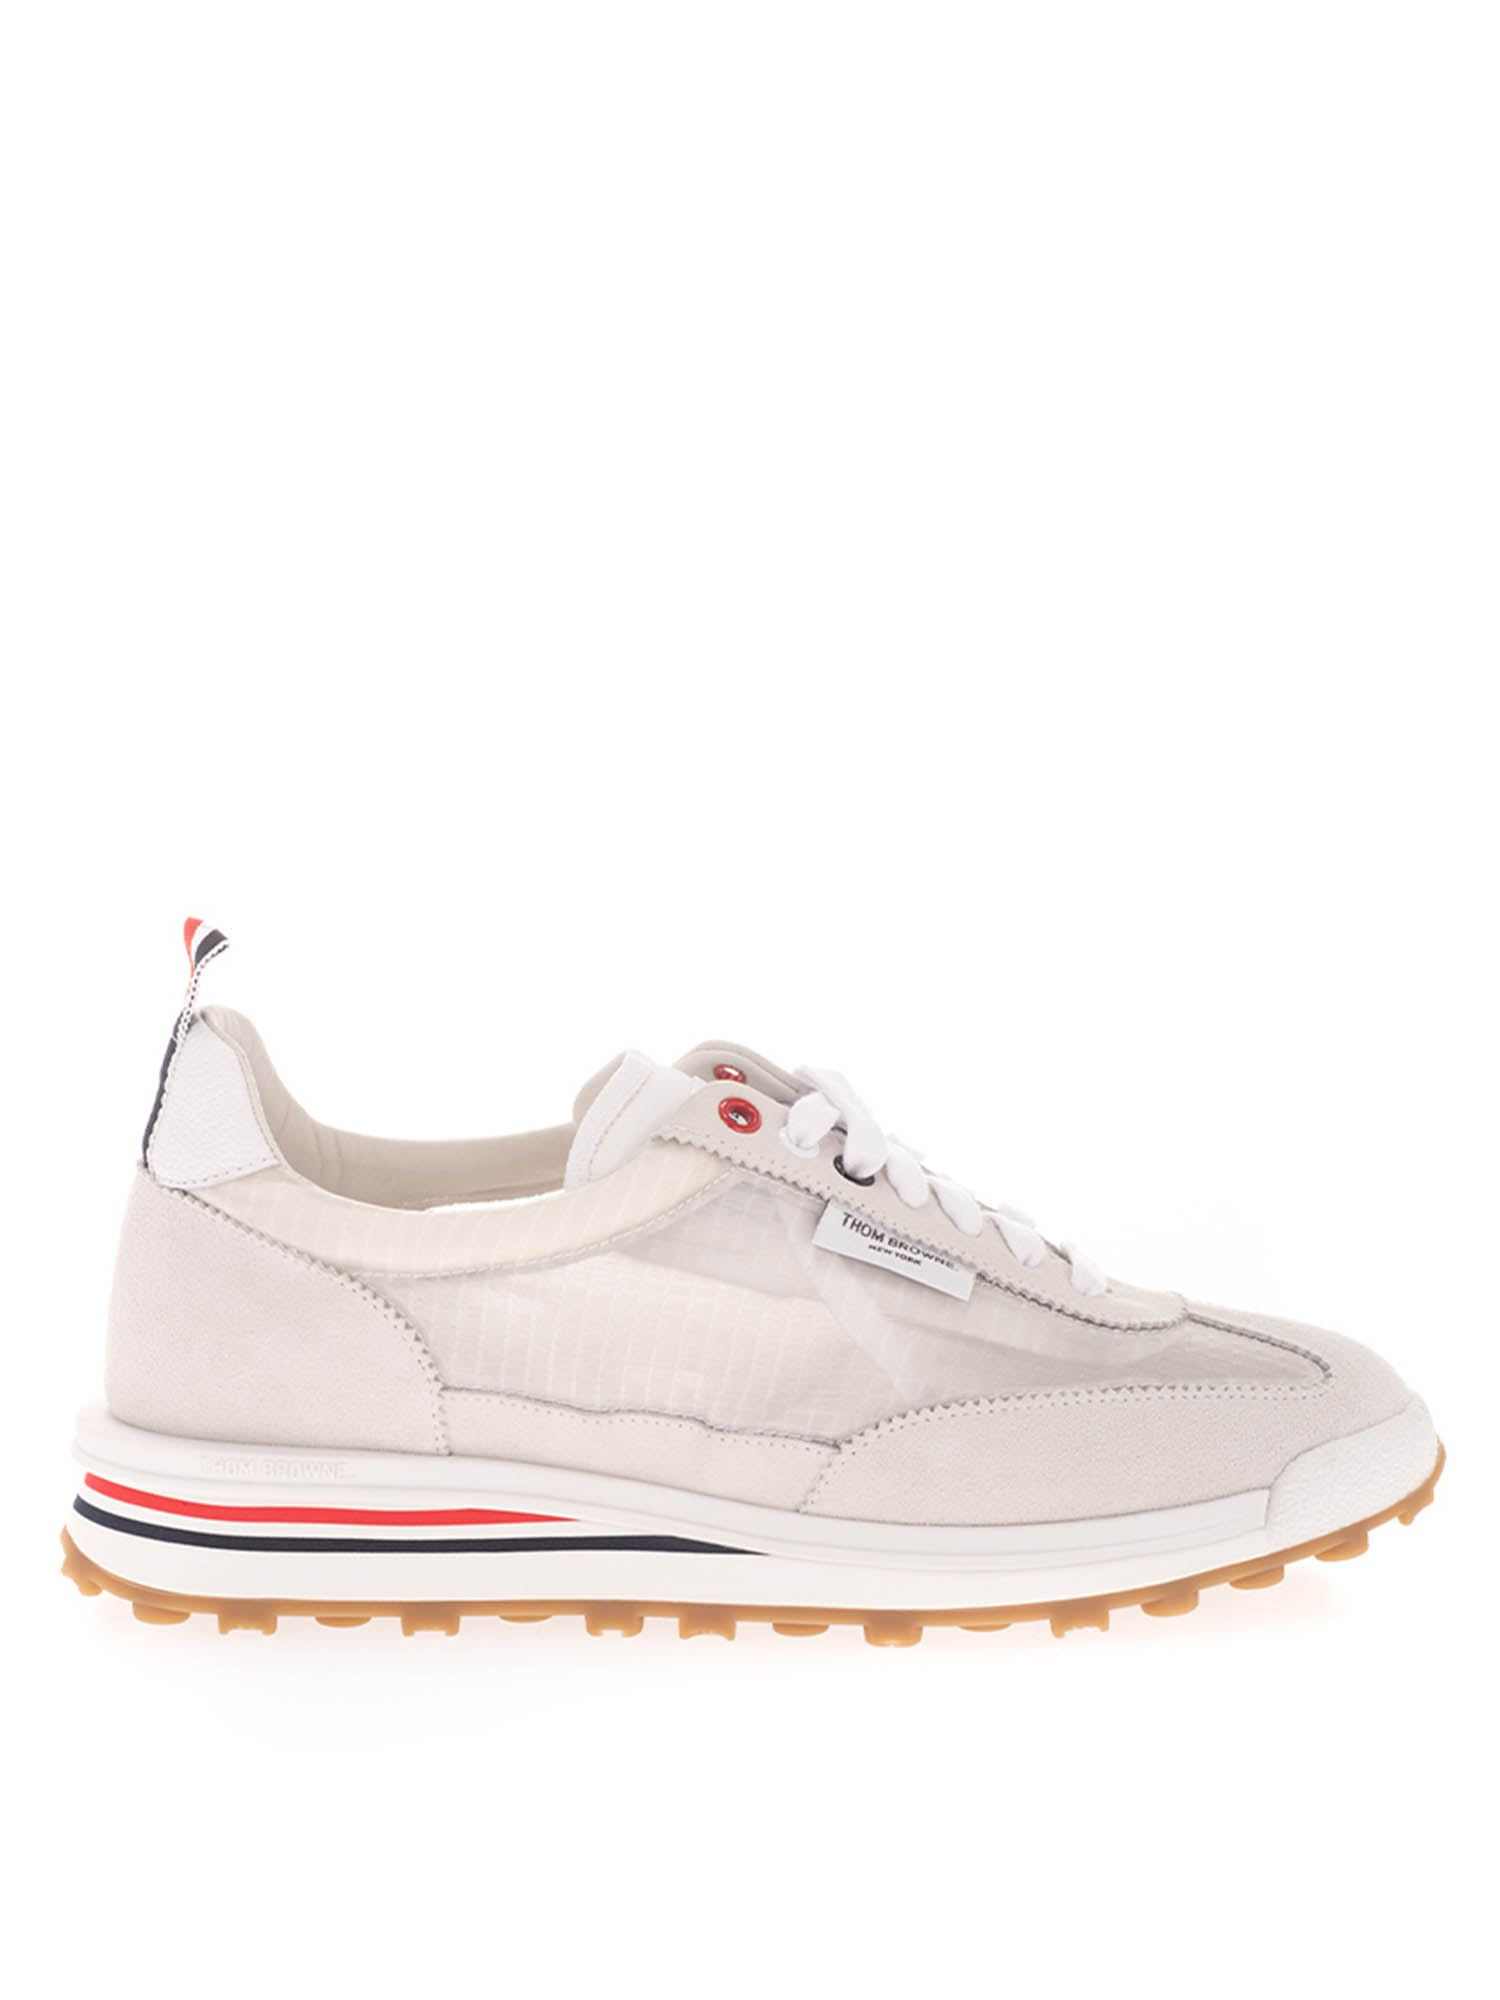 Thom Browne FABRIC AND SUEDE SNEAKERS IN WHITE